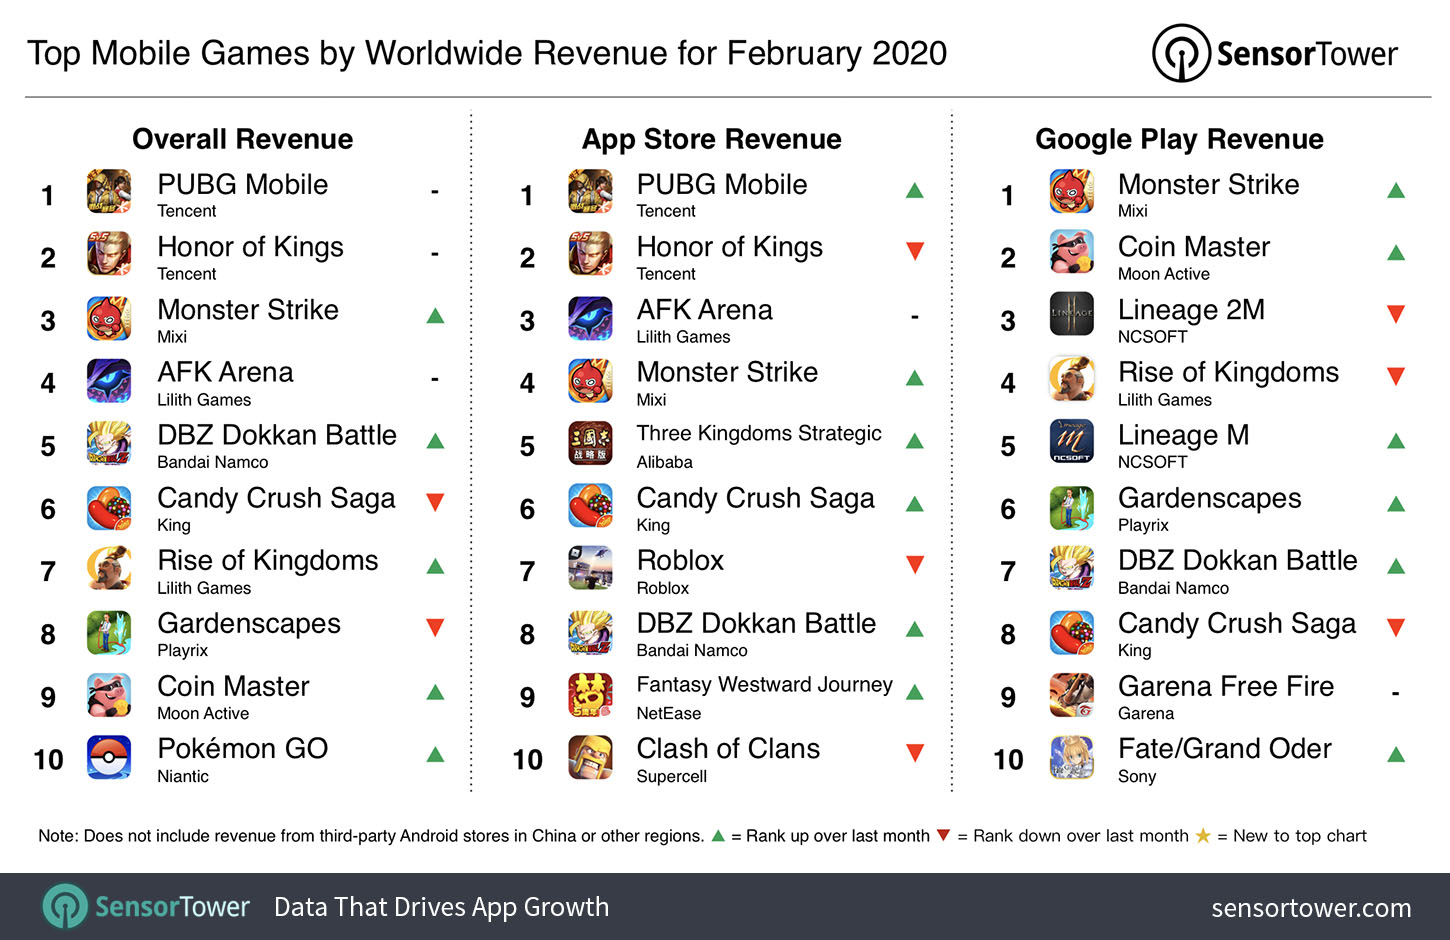 Roblox Projects Controllable Fire Top Mobile Games By Worldwide Revenue For February 2020 Internet Technology News